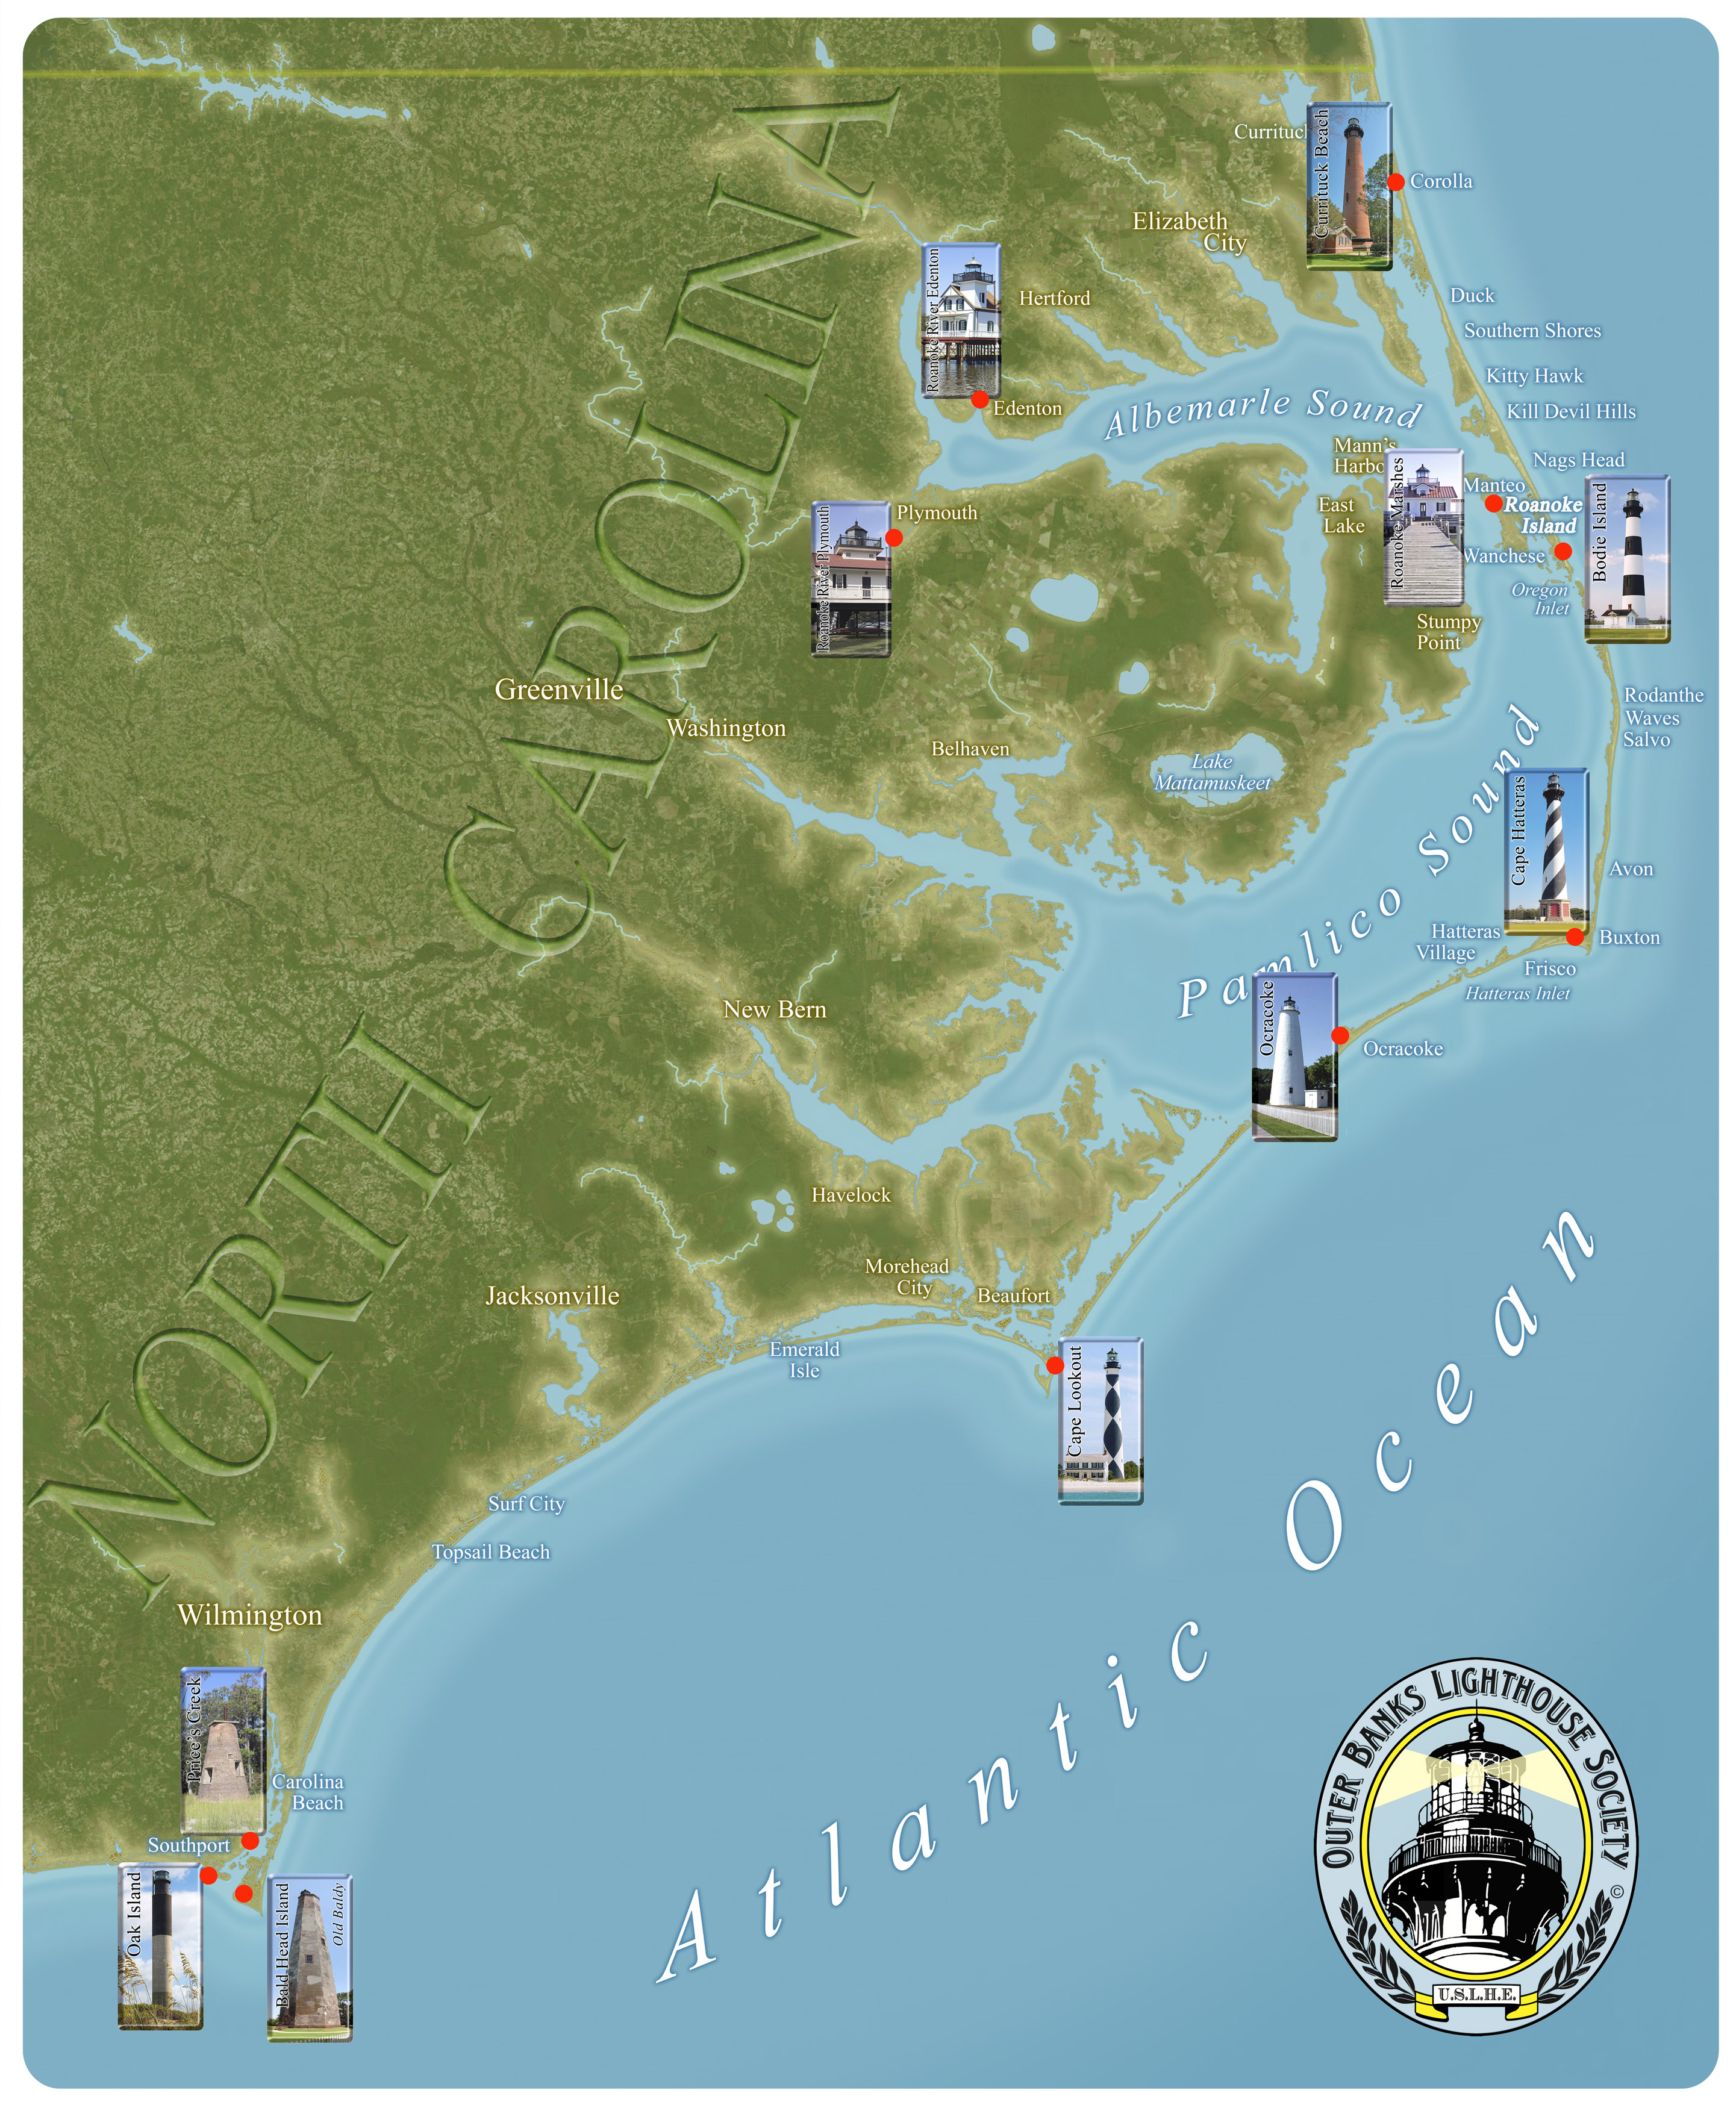 LIGHTHOUSE MAP - The map of north carolina